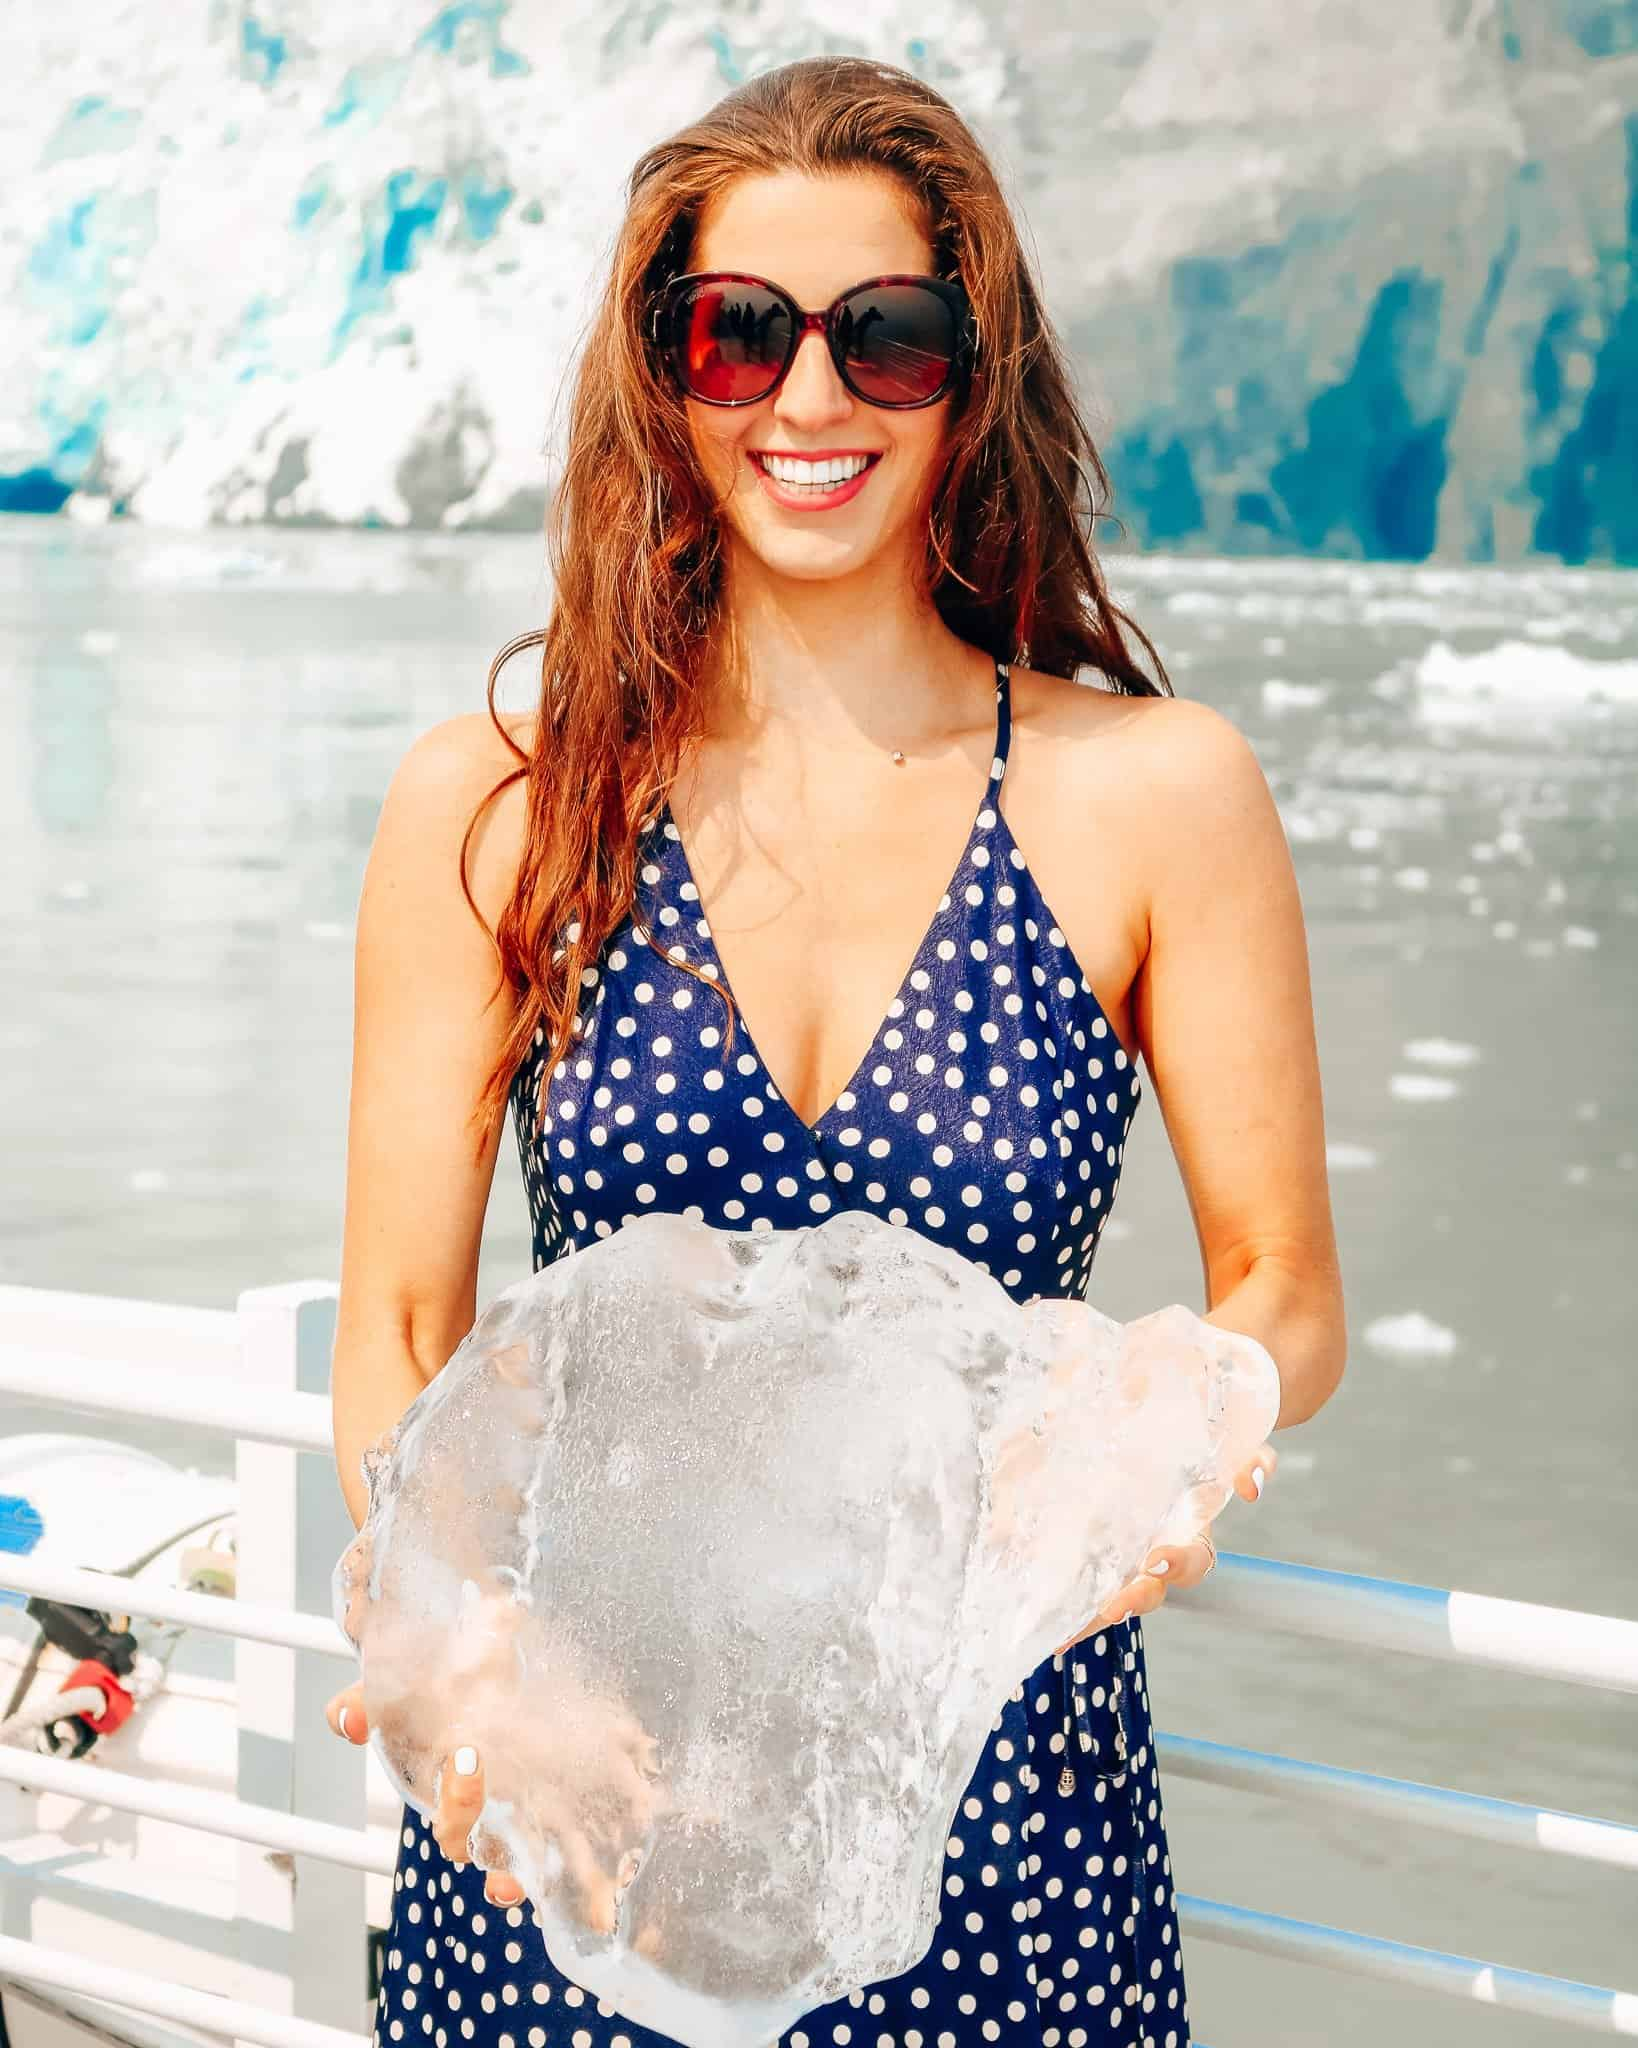 Bettina holding Ice from Aialik Glacier on Pursuit Collection Cruise Kenai Fjord Alaska - The Next Trip